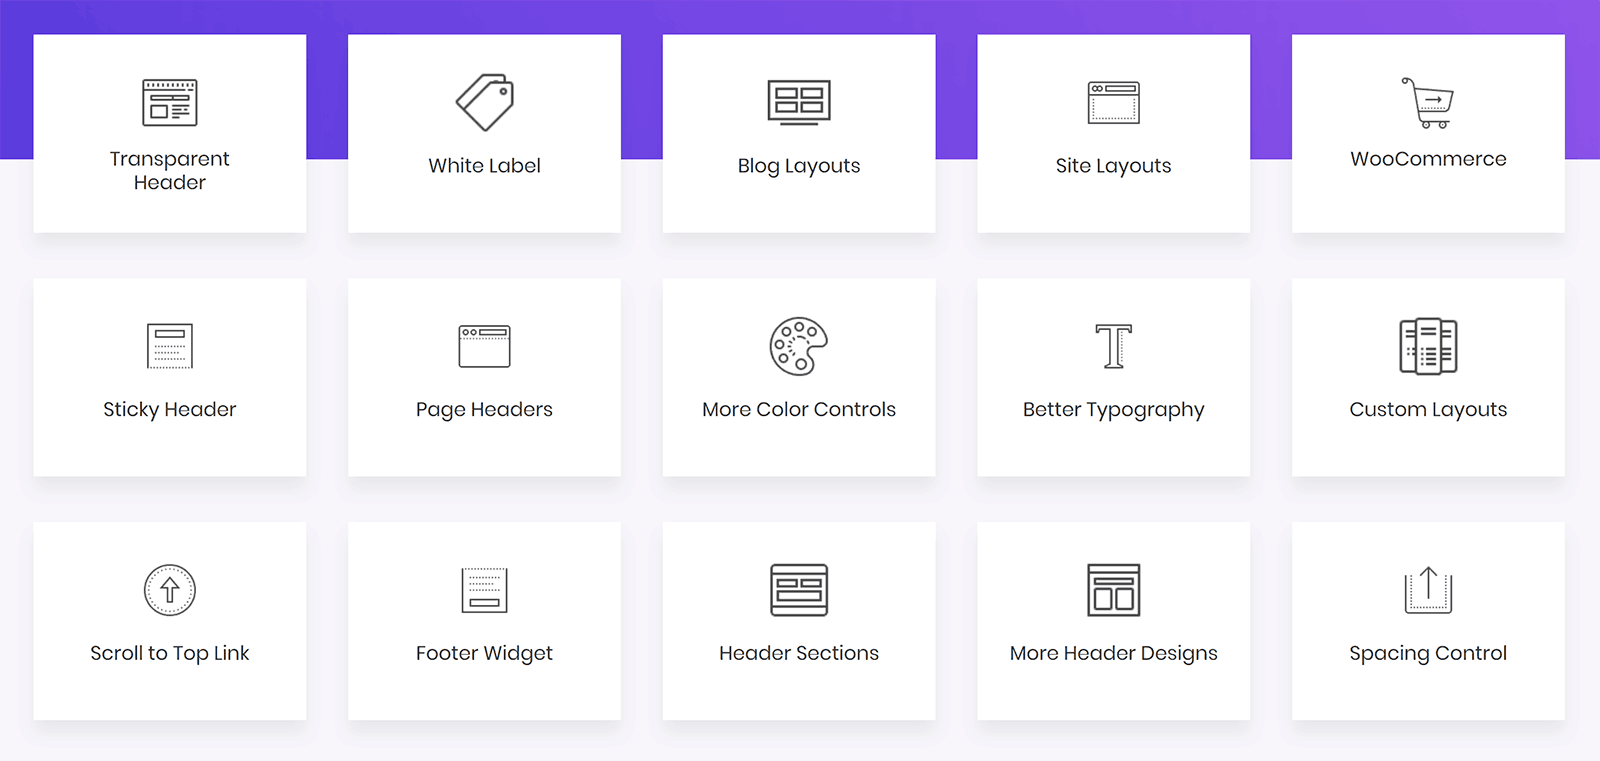 Free and Pro Version Features